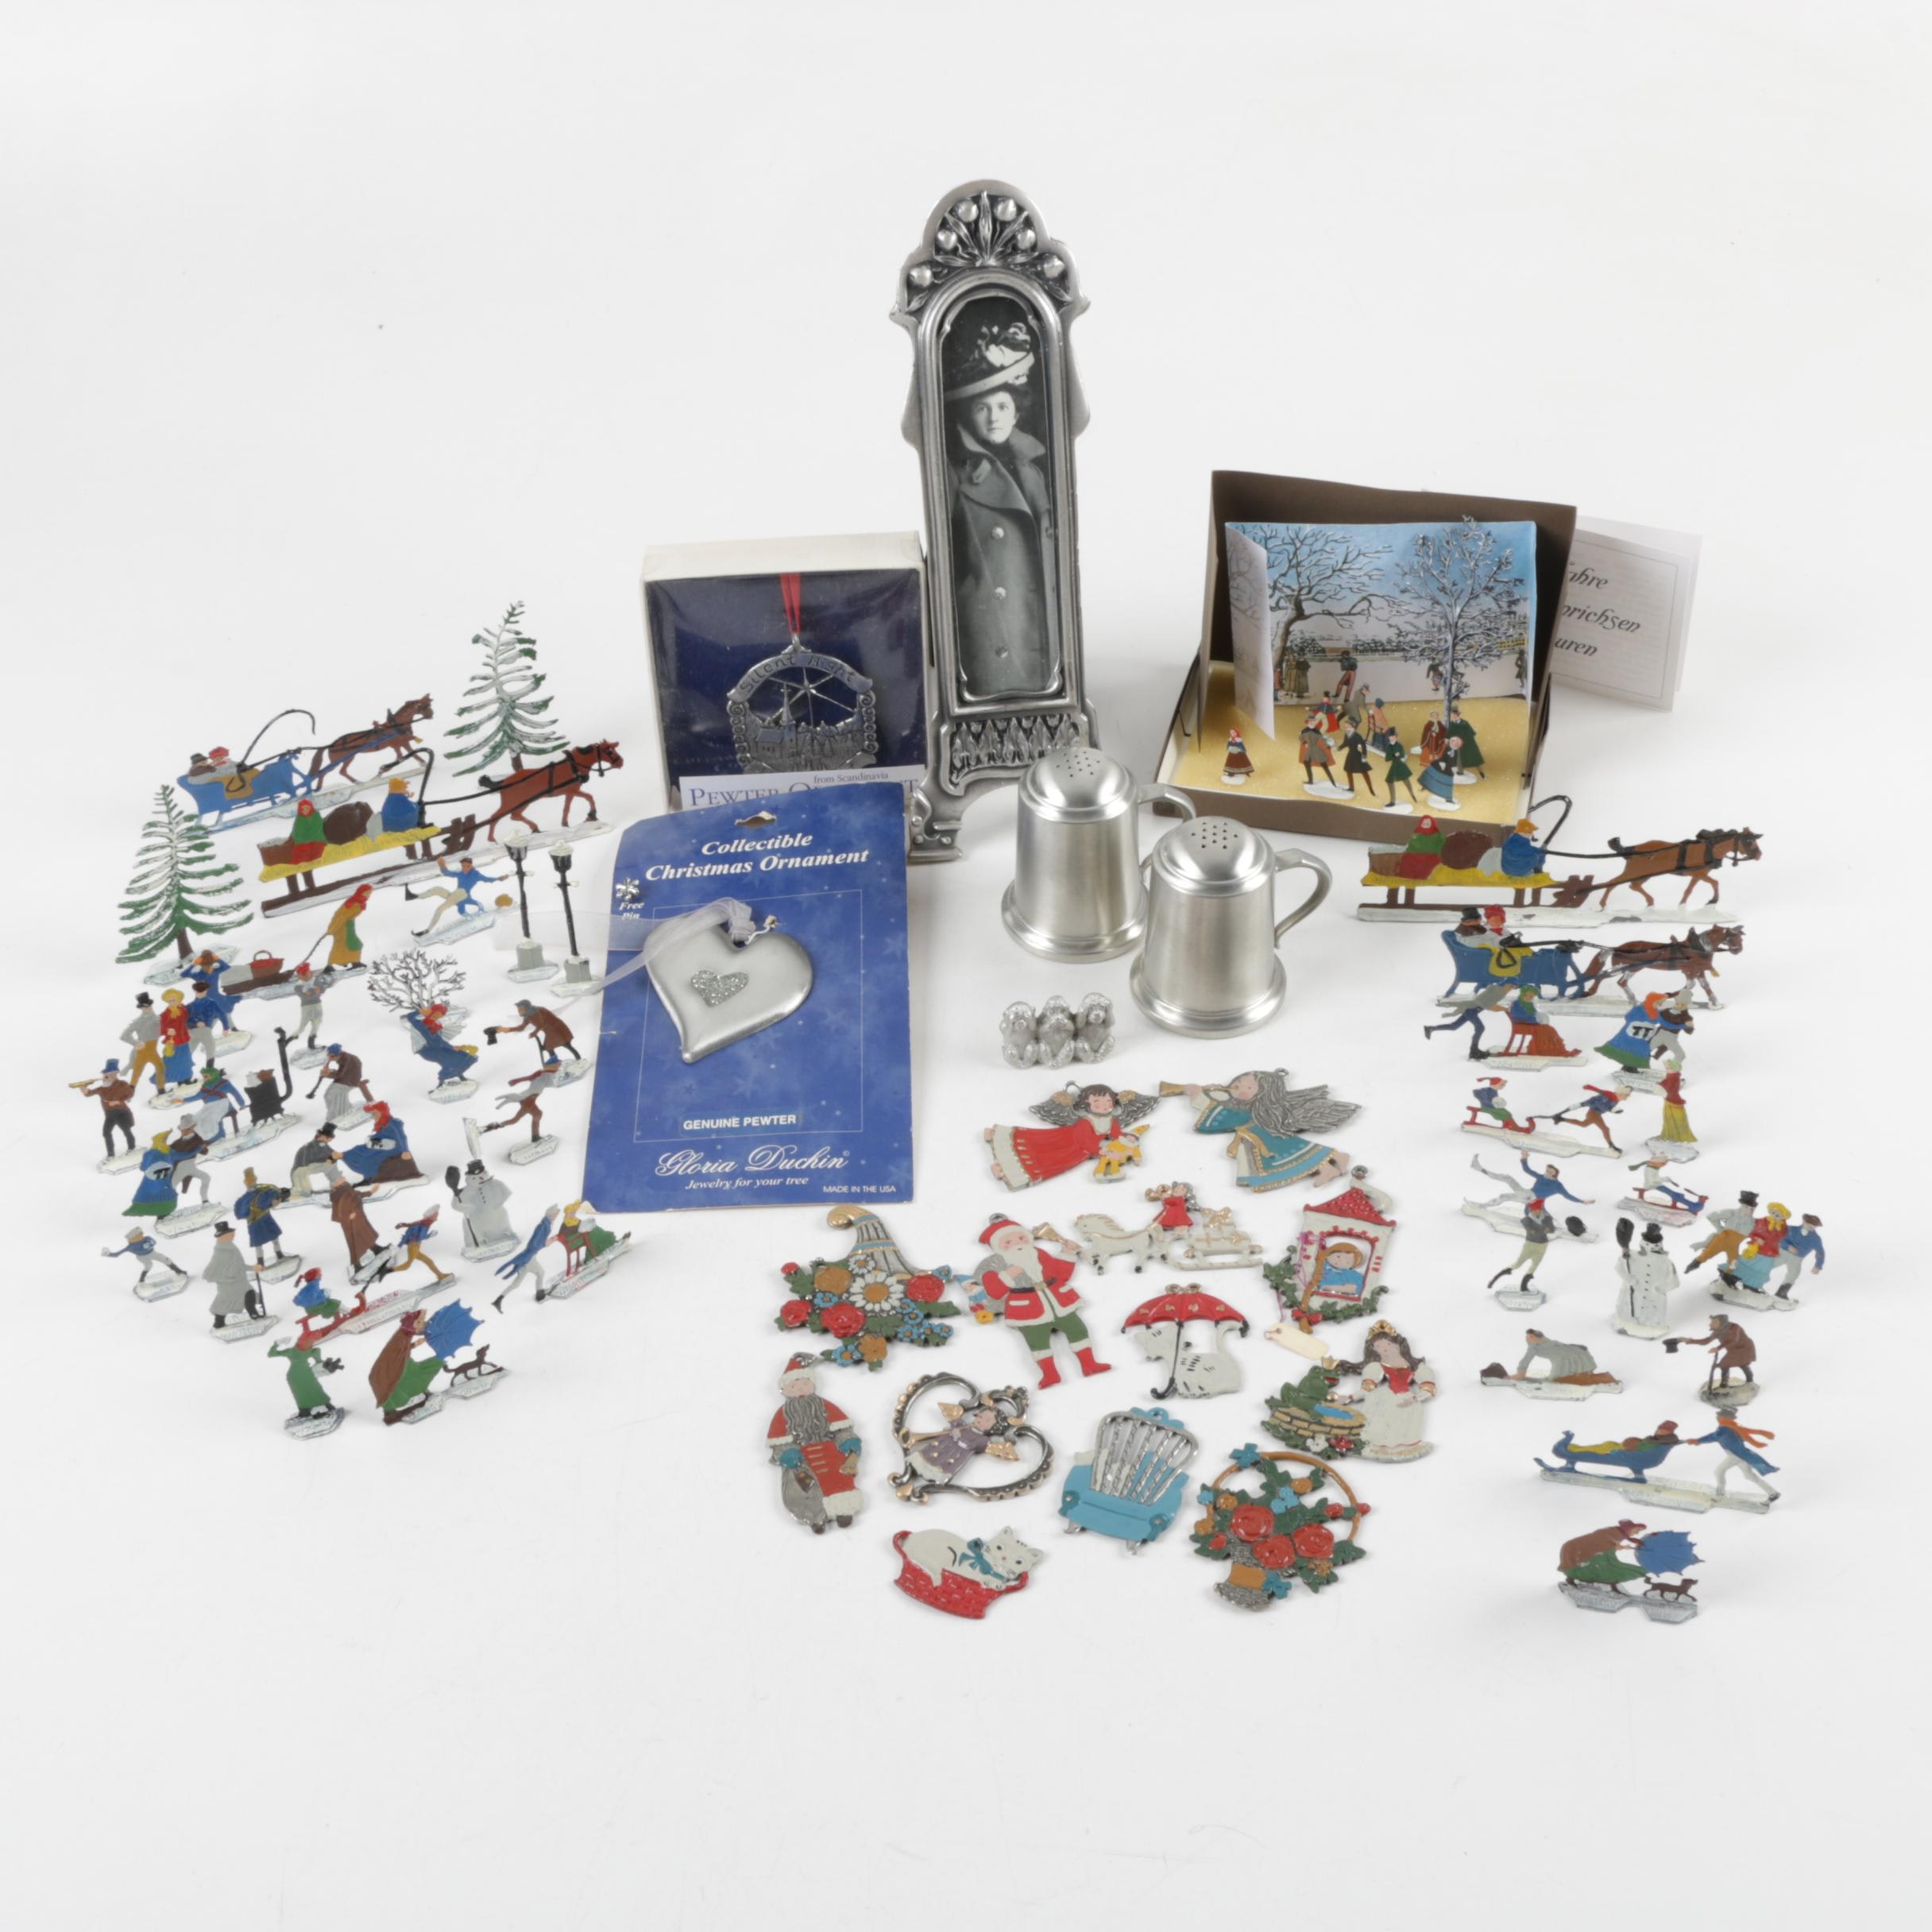 Pewter Ornaments and Decor Assortment